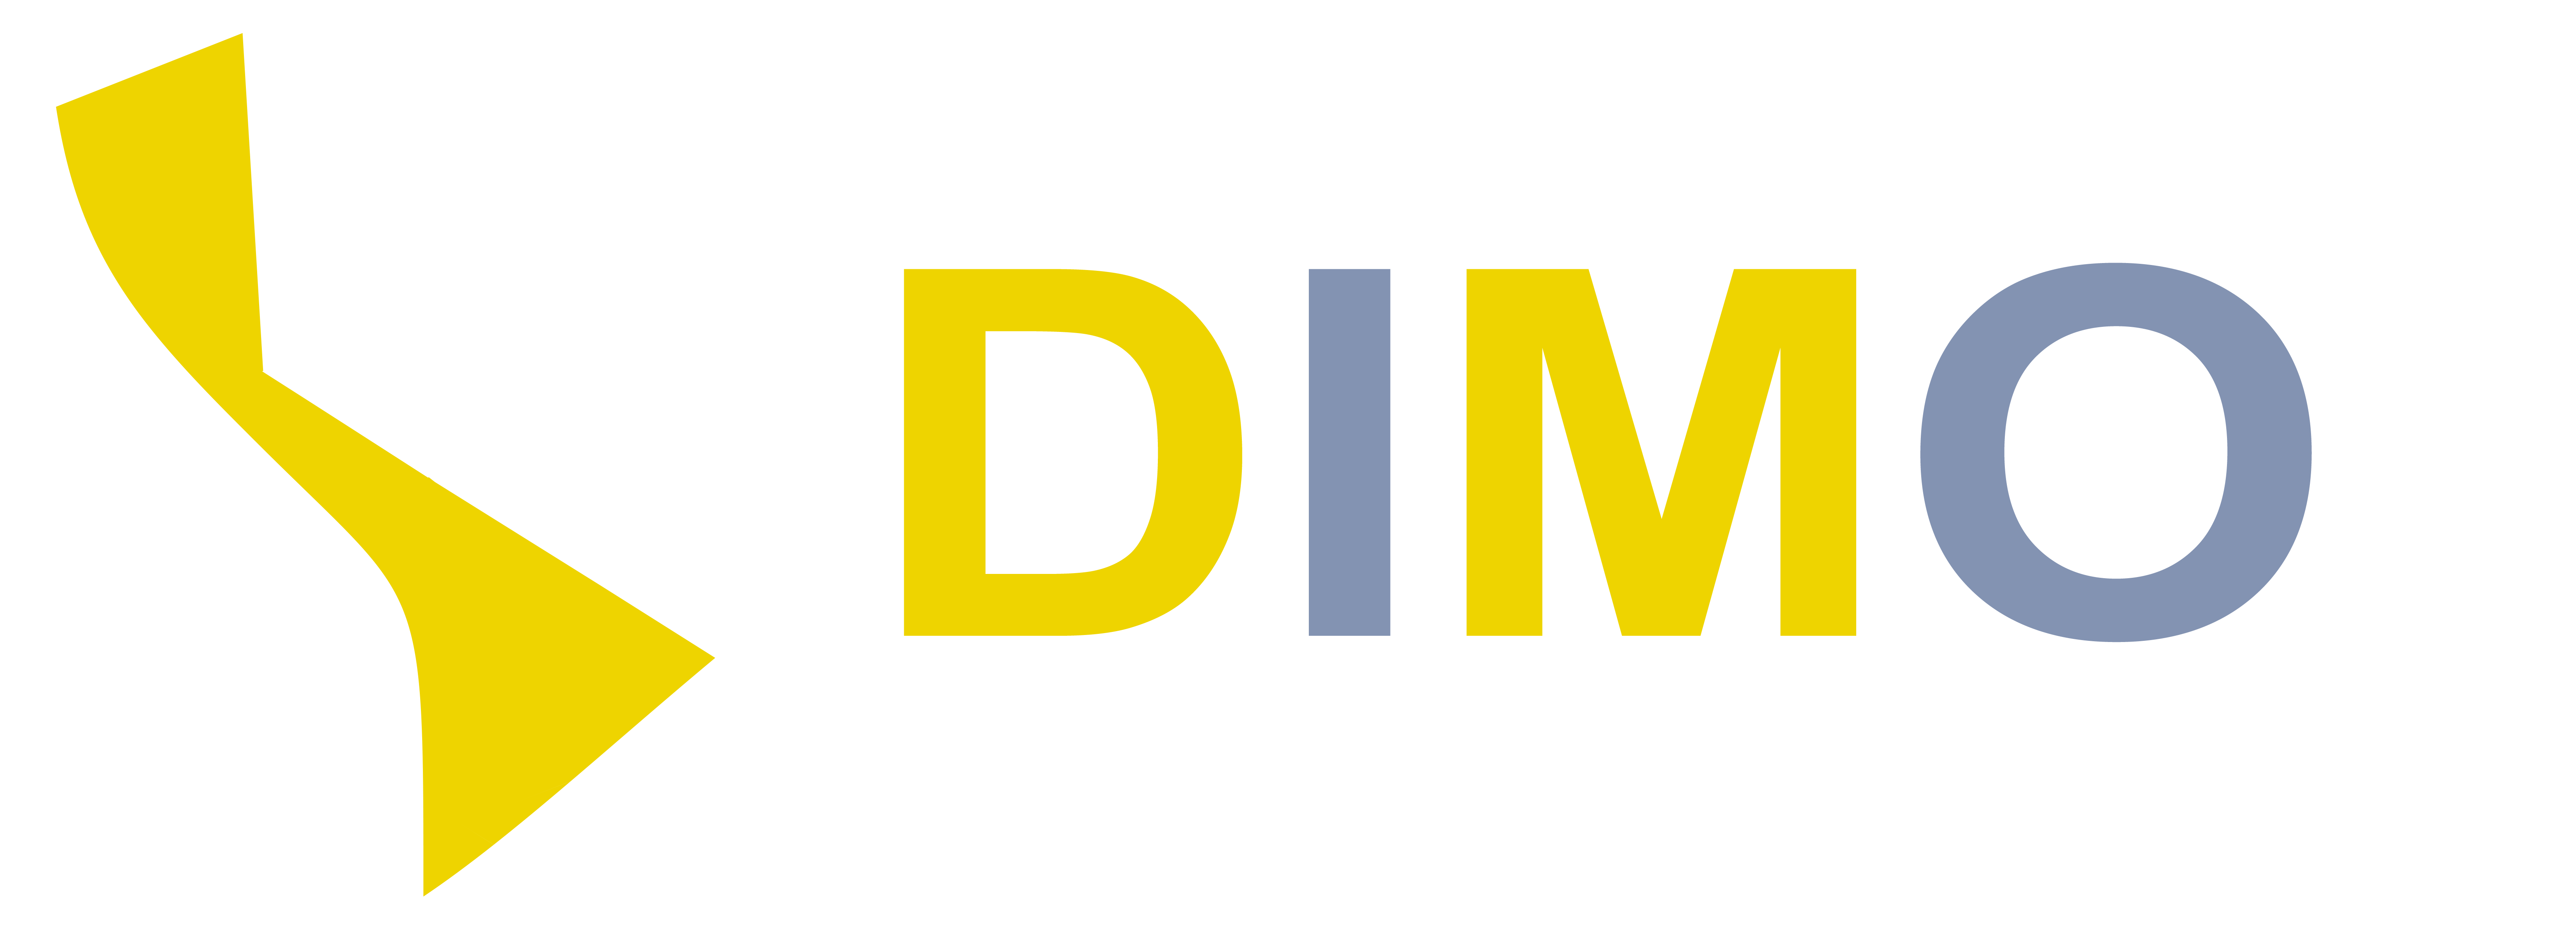 DIMO Publishing Solution